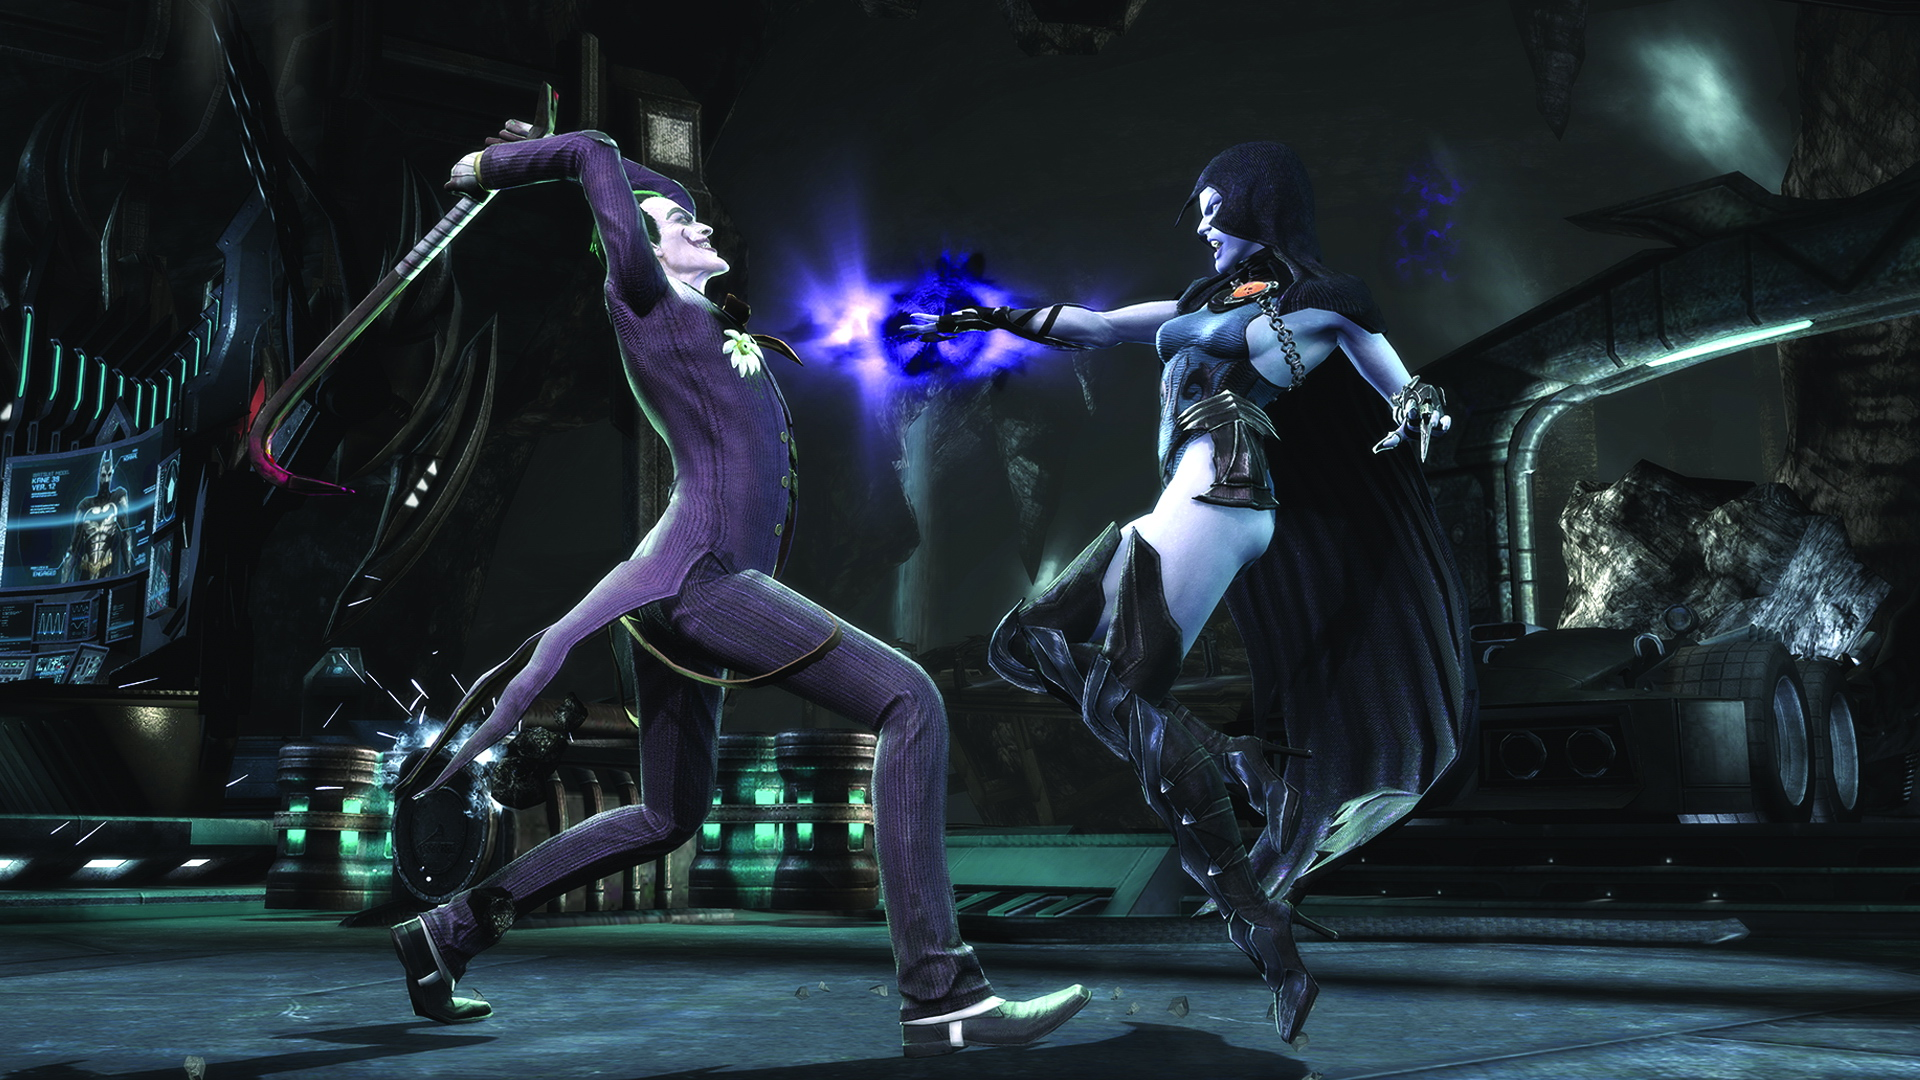 injustice gods among us ultimate edition on ps4. Black Bedroom Furniture Sets. Home Design Ideas